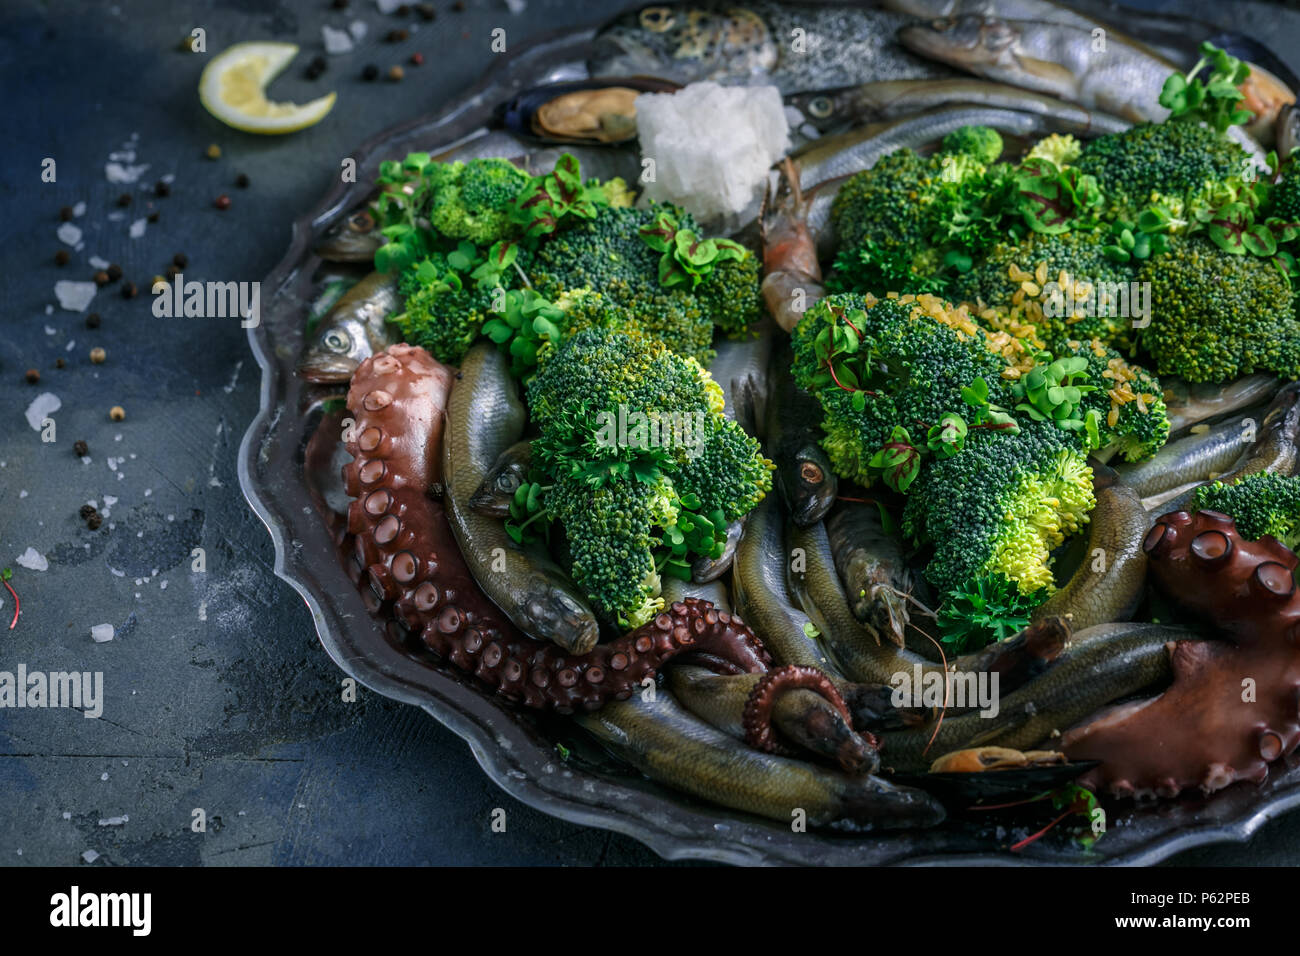 Close view of Raw Mixed seafood with vegs - Stock Image